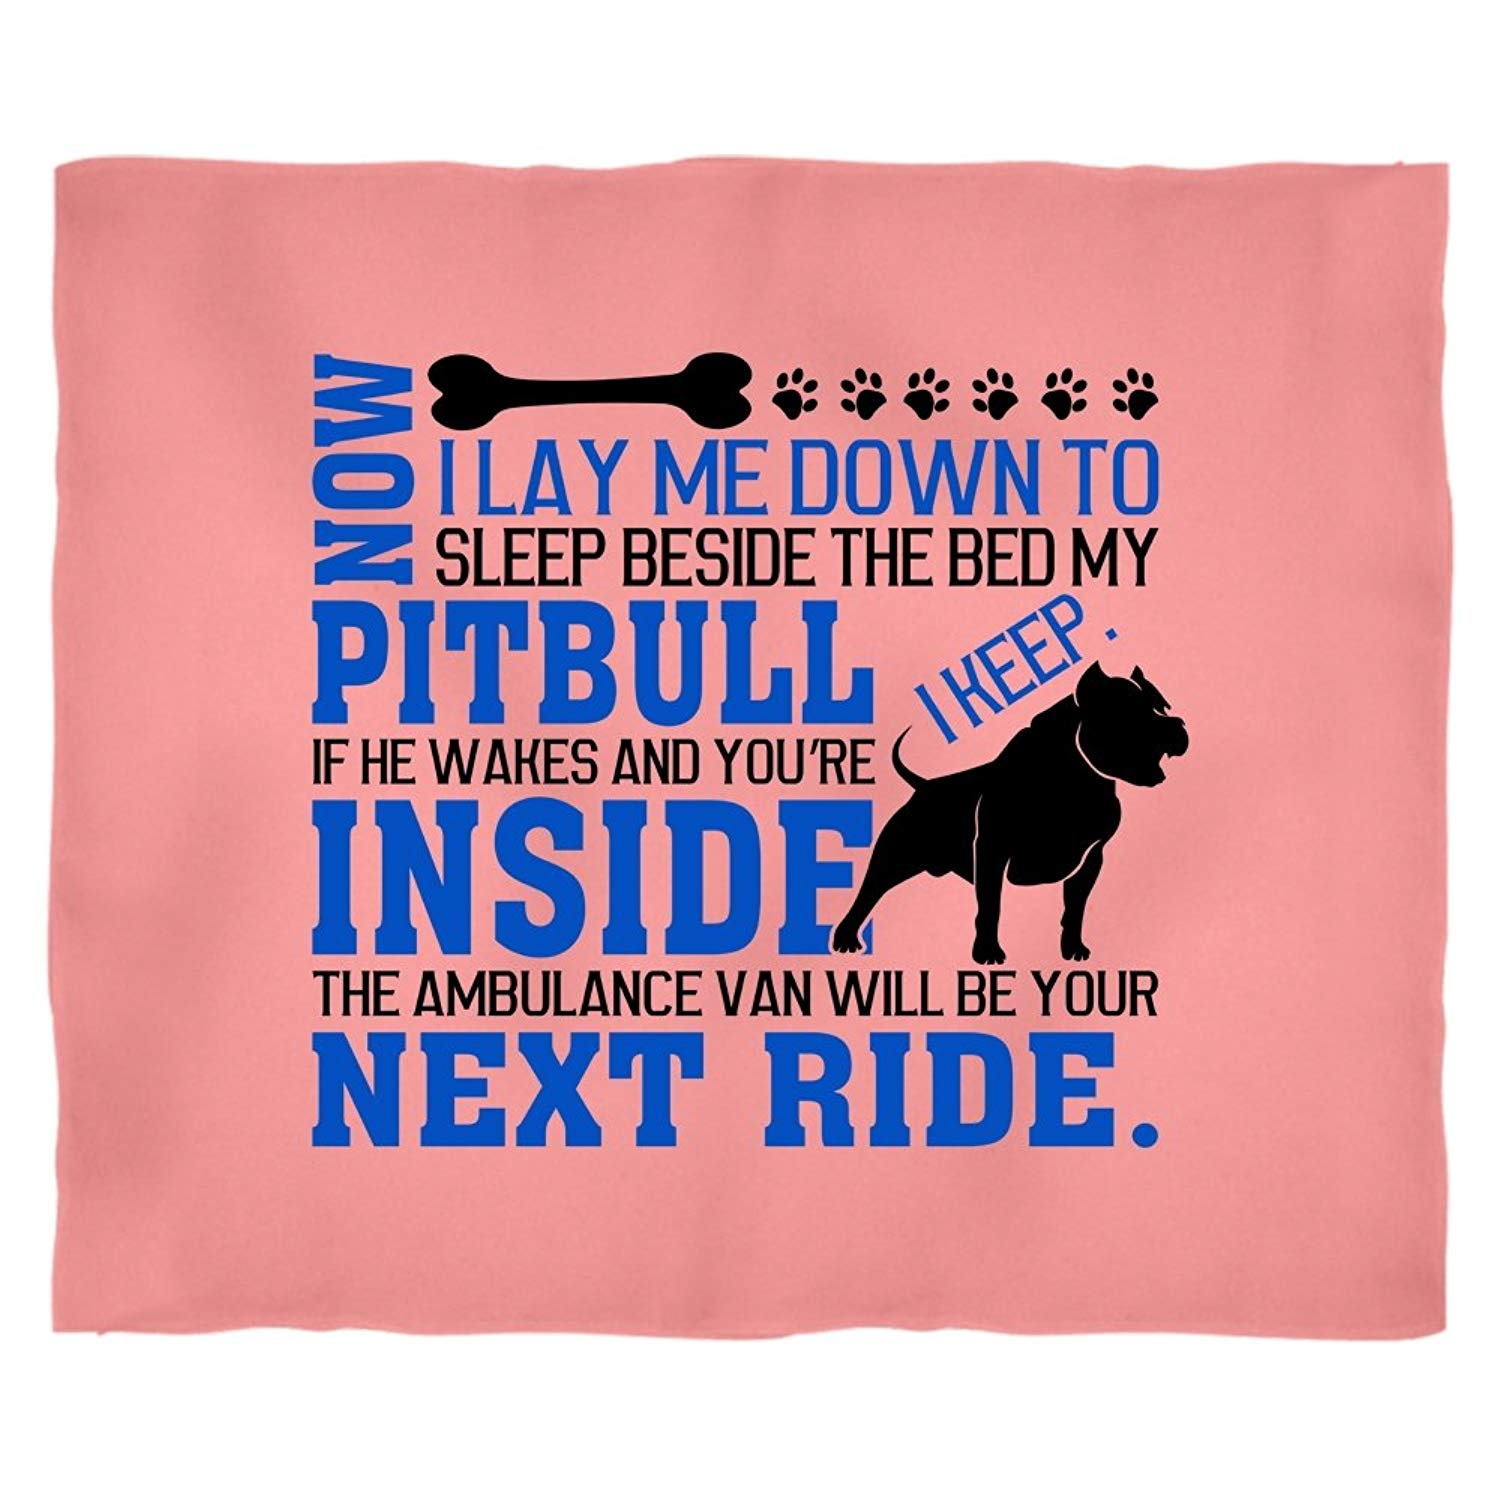 My Pit Bull I Keep Stadium Blanket, I Lay Me Down Soft Fleece Throw Blanket